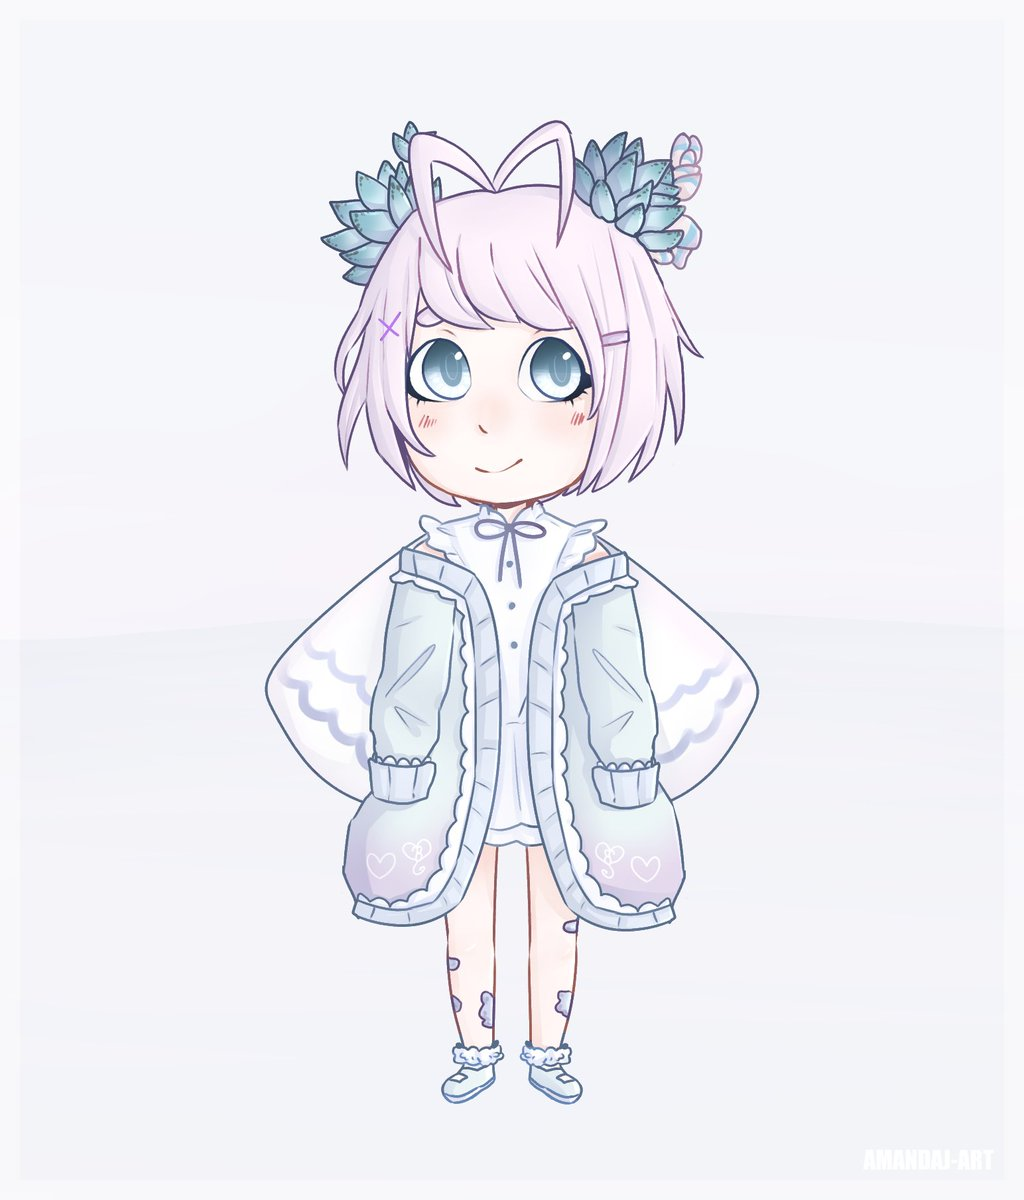 Artfight drawing! Character- SuricateDash  #art #artfight #cute #chibi https://t.co/zu9YQoTpn6